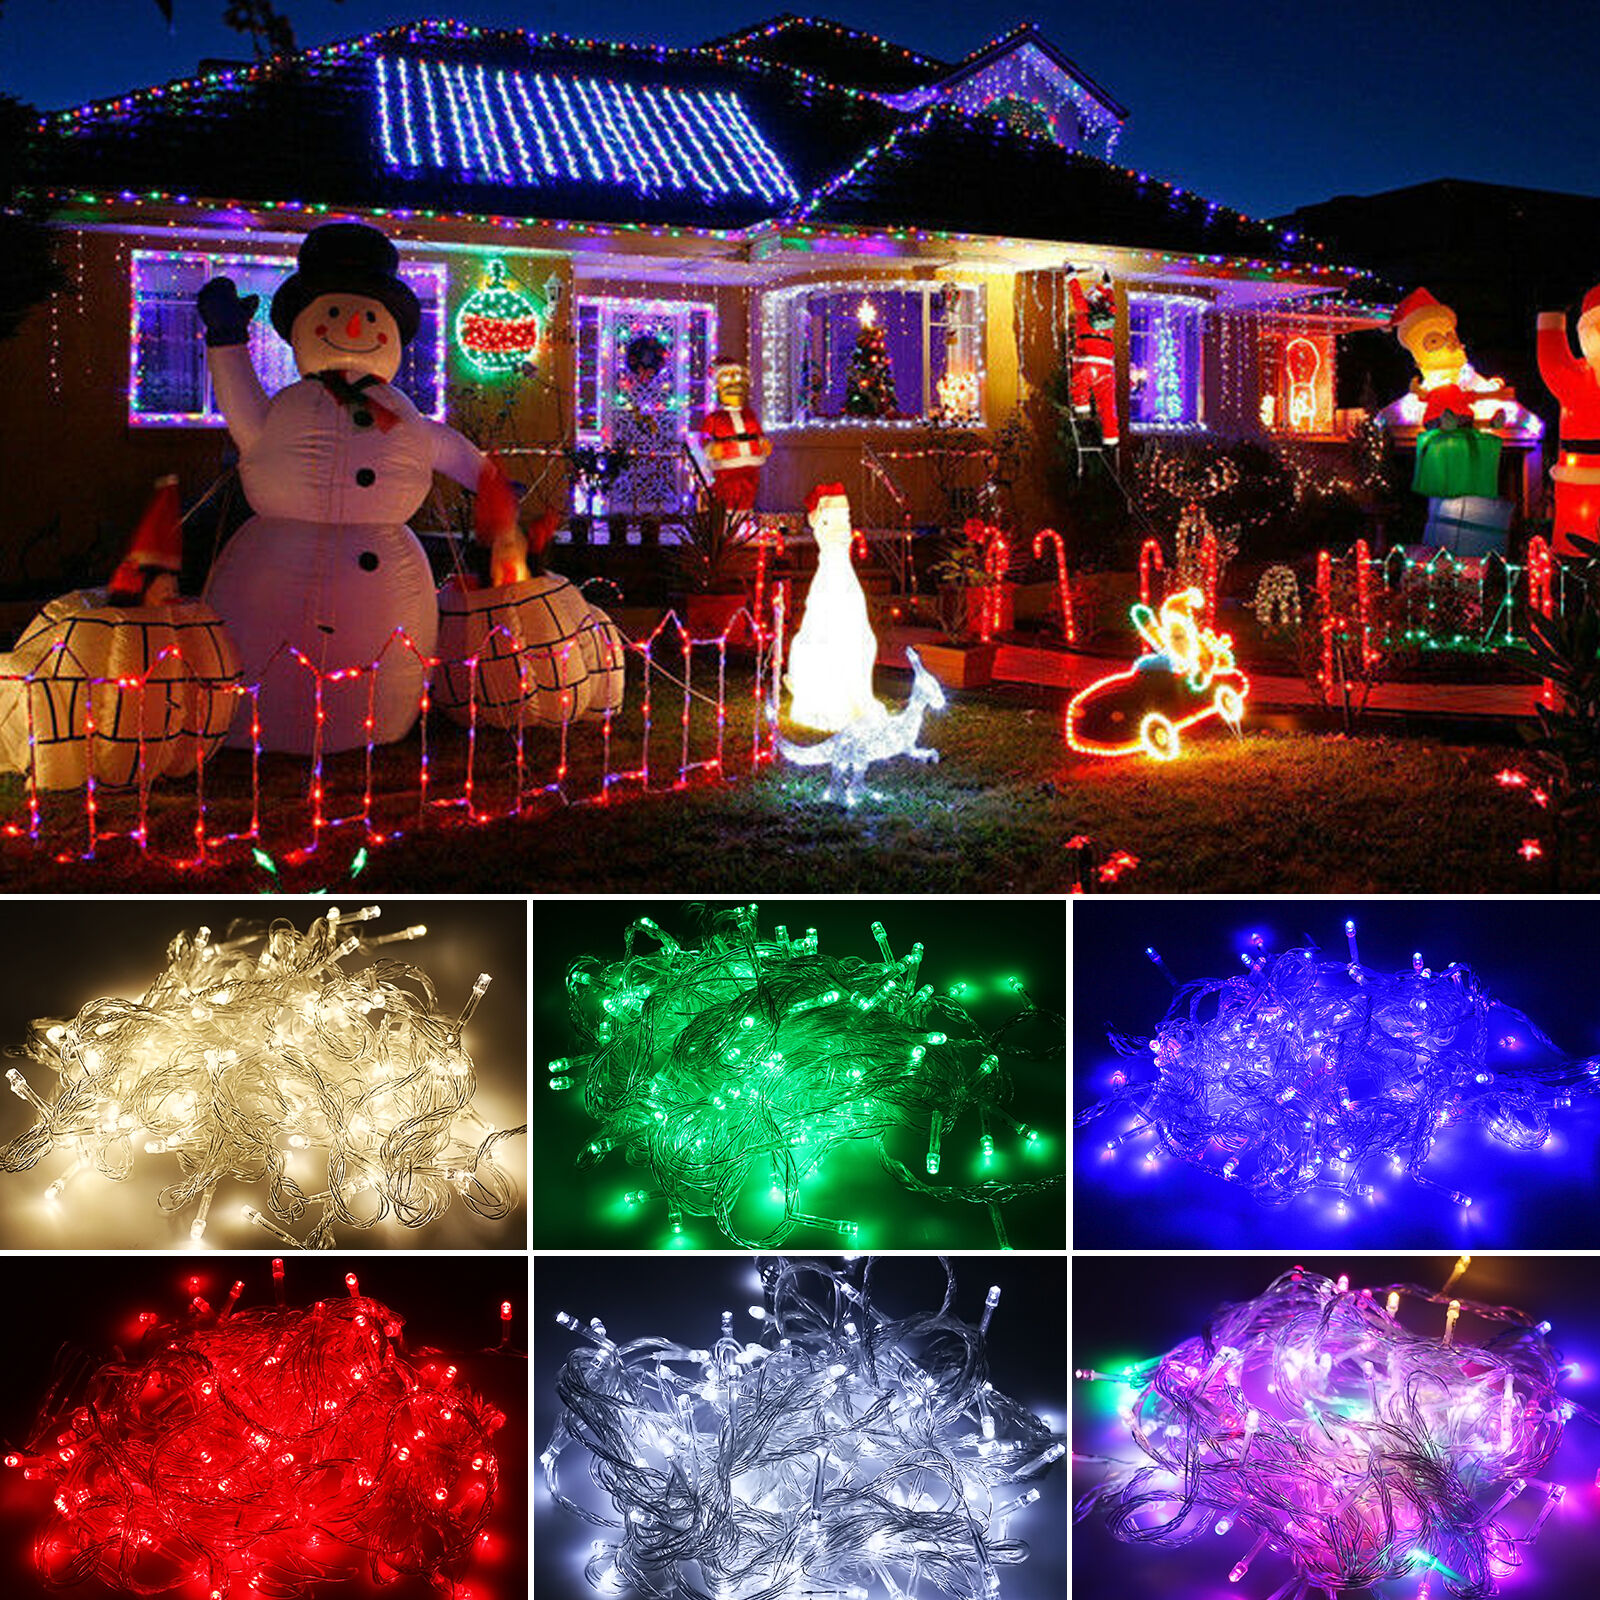 3 Musical 8 Christmas Tree Decoration Indoor Outdoor Led Lights In Box For Sale Online Ebay